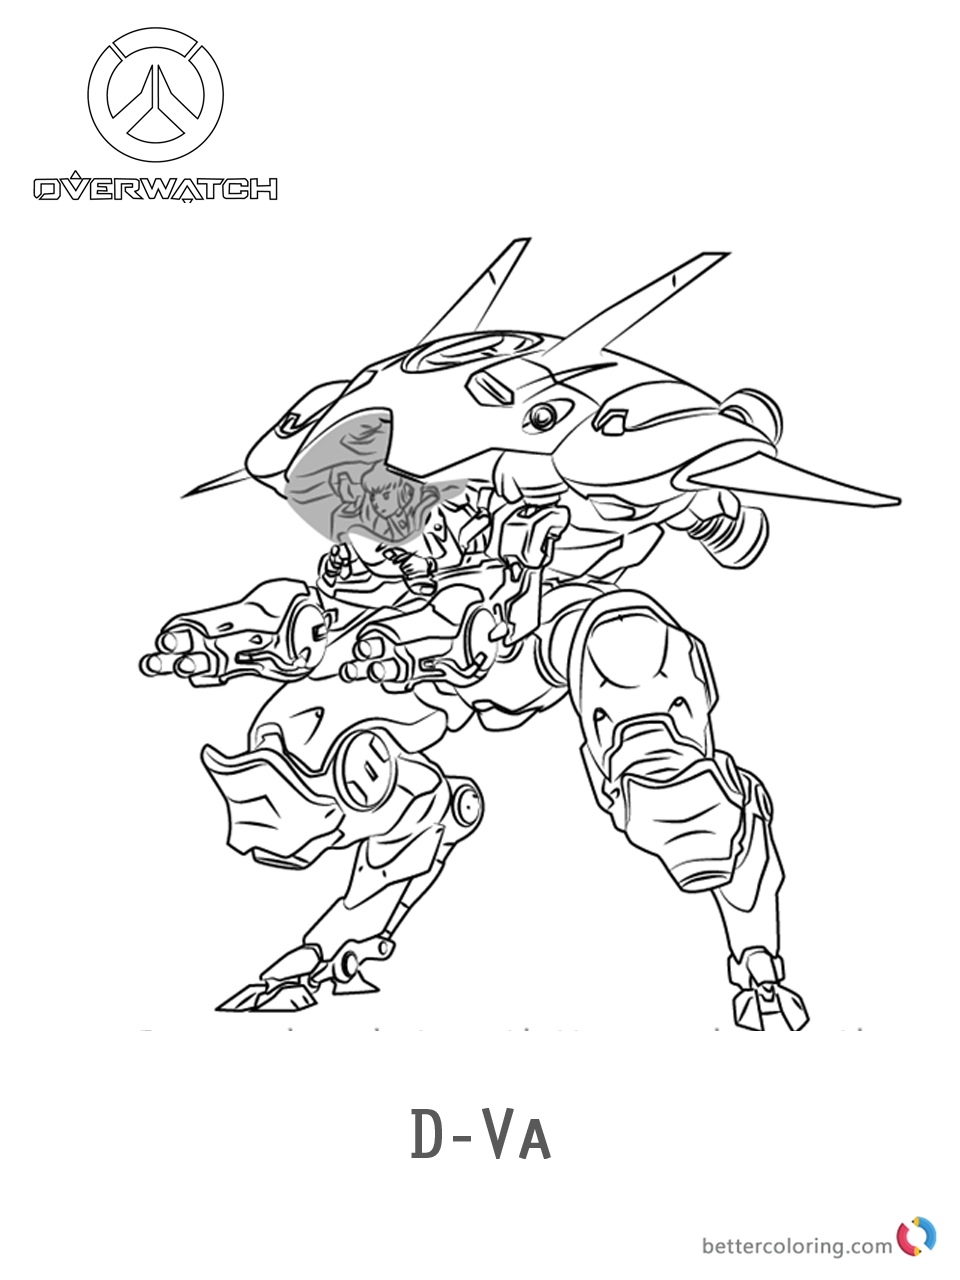 D.Va from Overwatch coloring pages printable